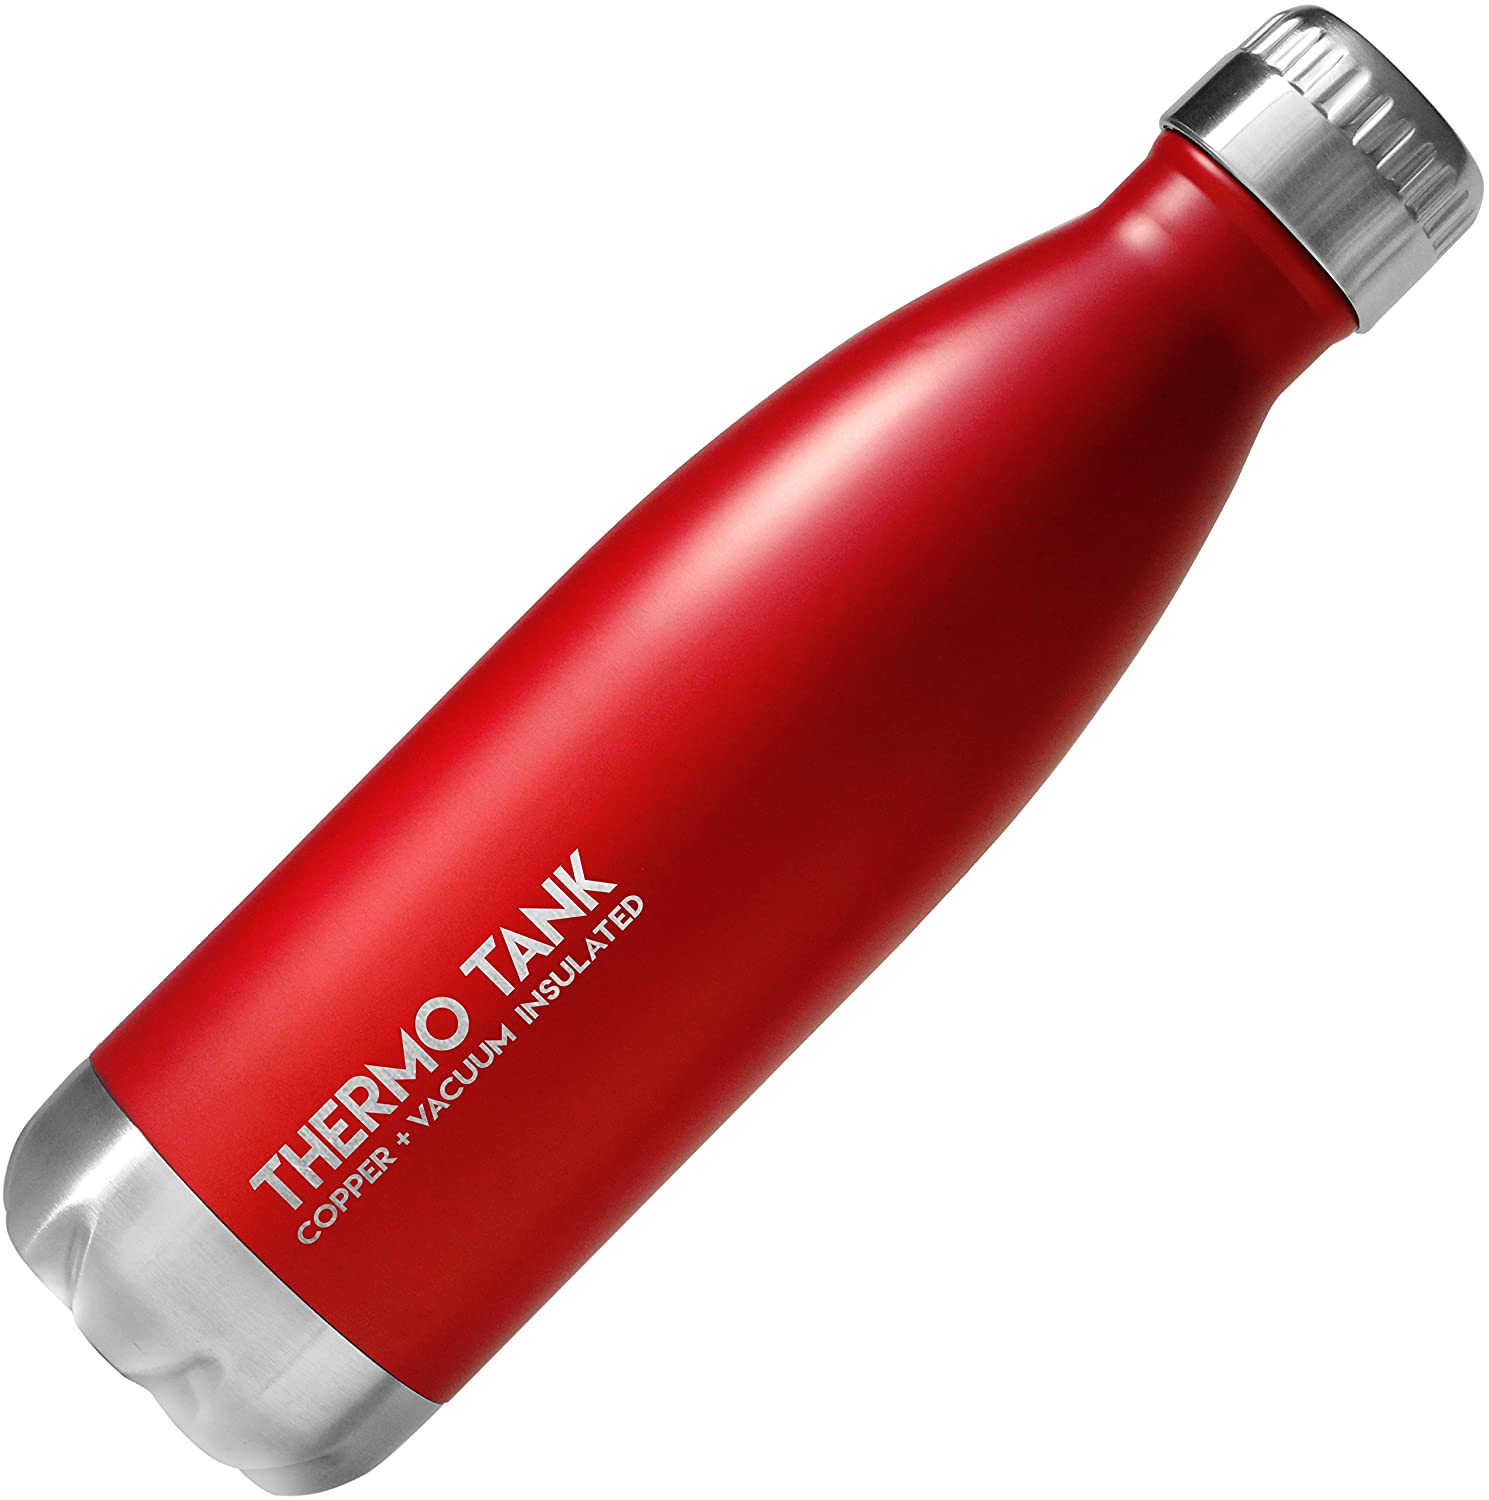 Thermo Tank Insulated Stainless Steel Water Bottle - Ice Cold 36 Hours! Vacuum + Copper Technology - 17 Ounce